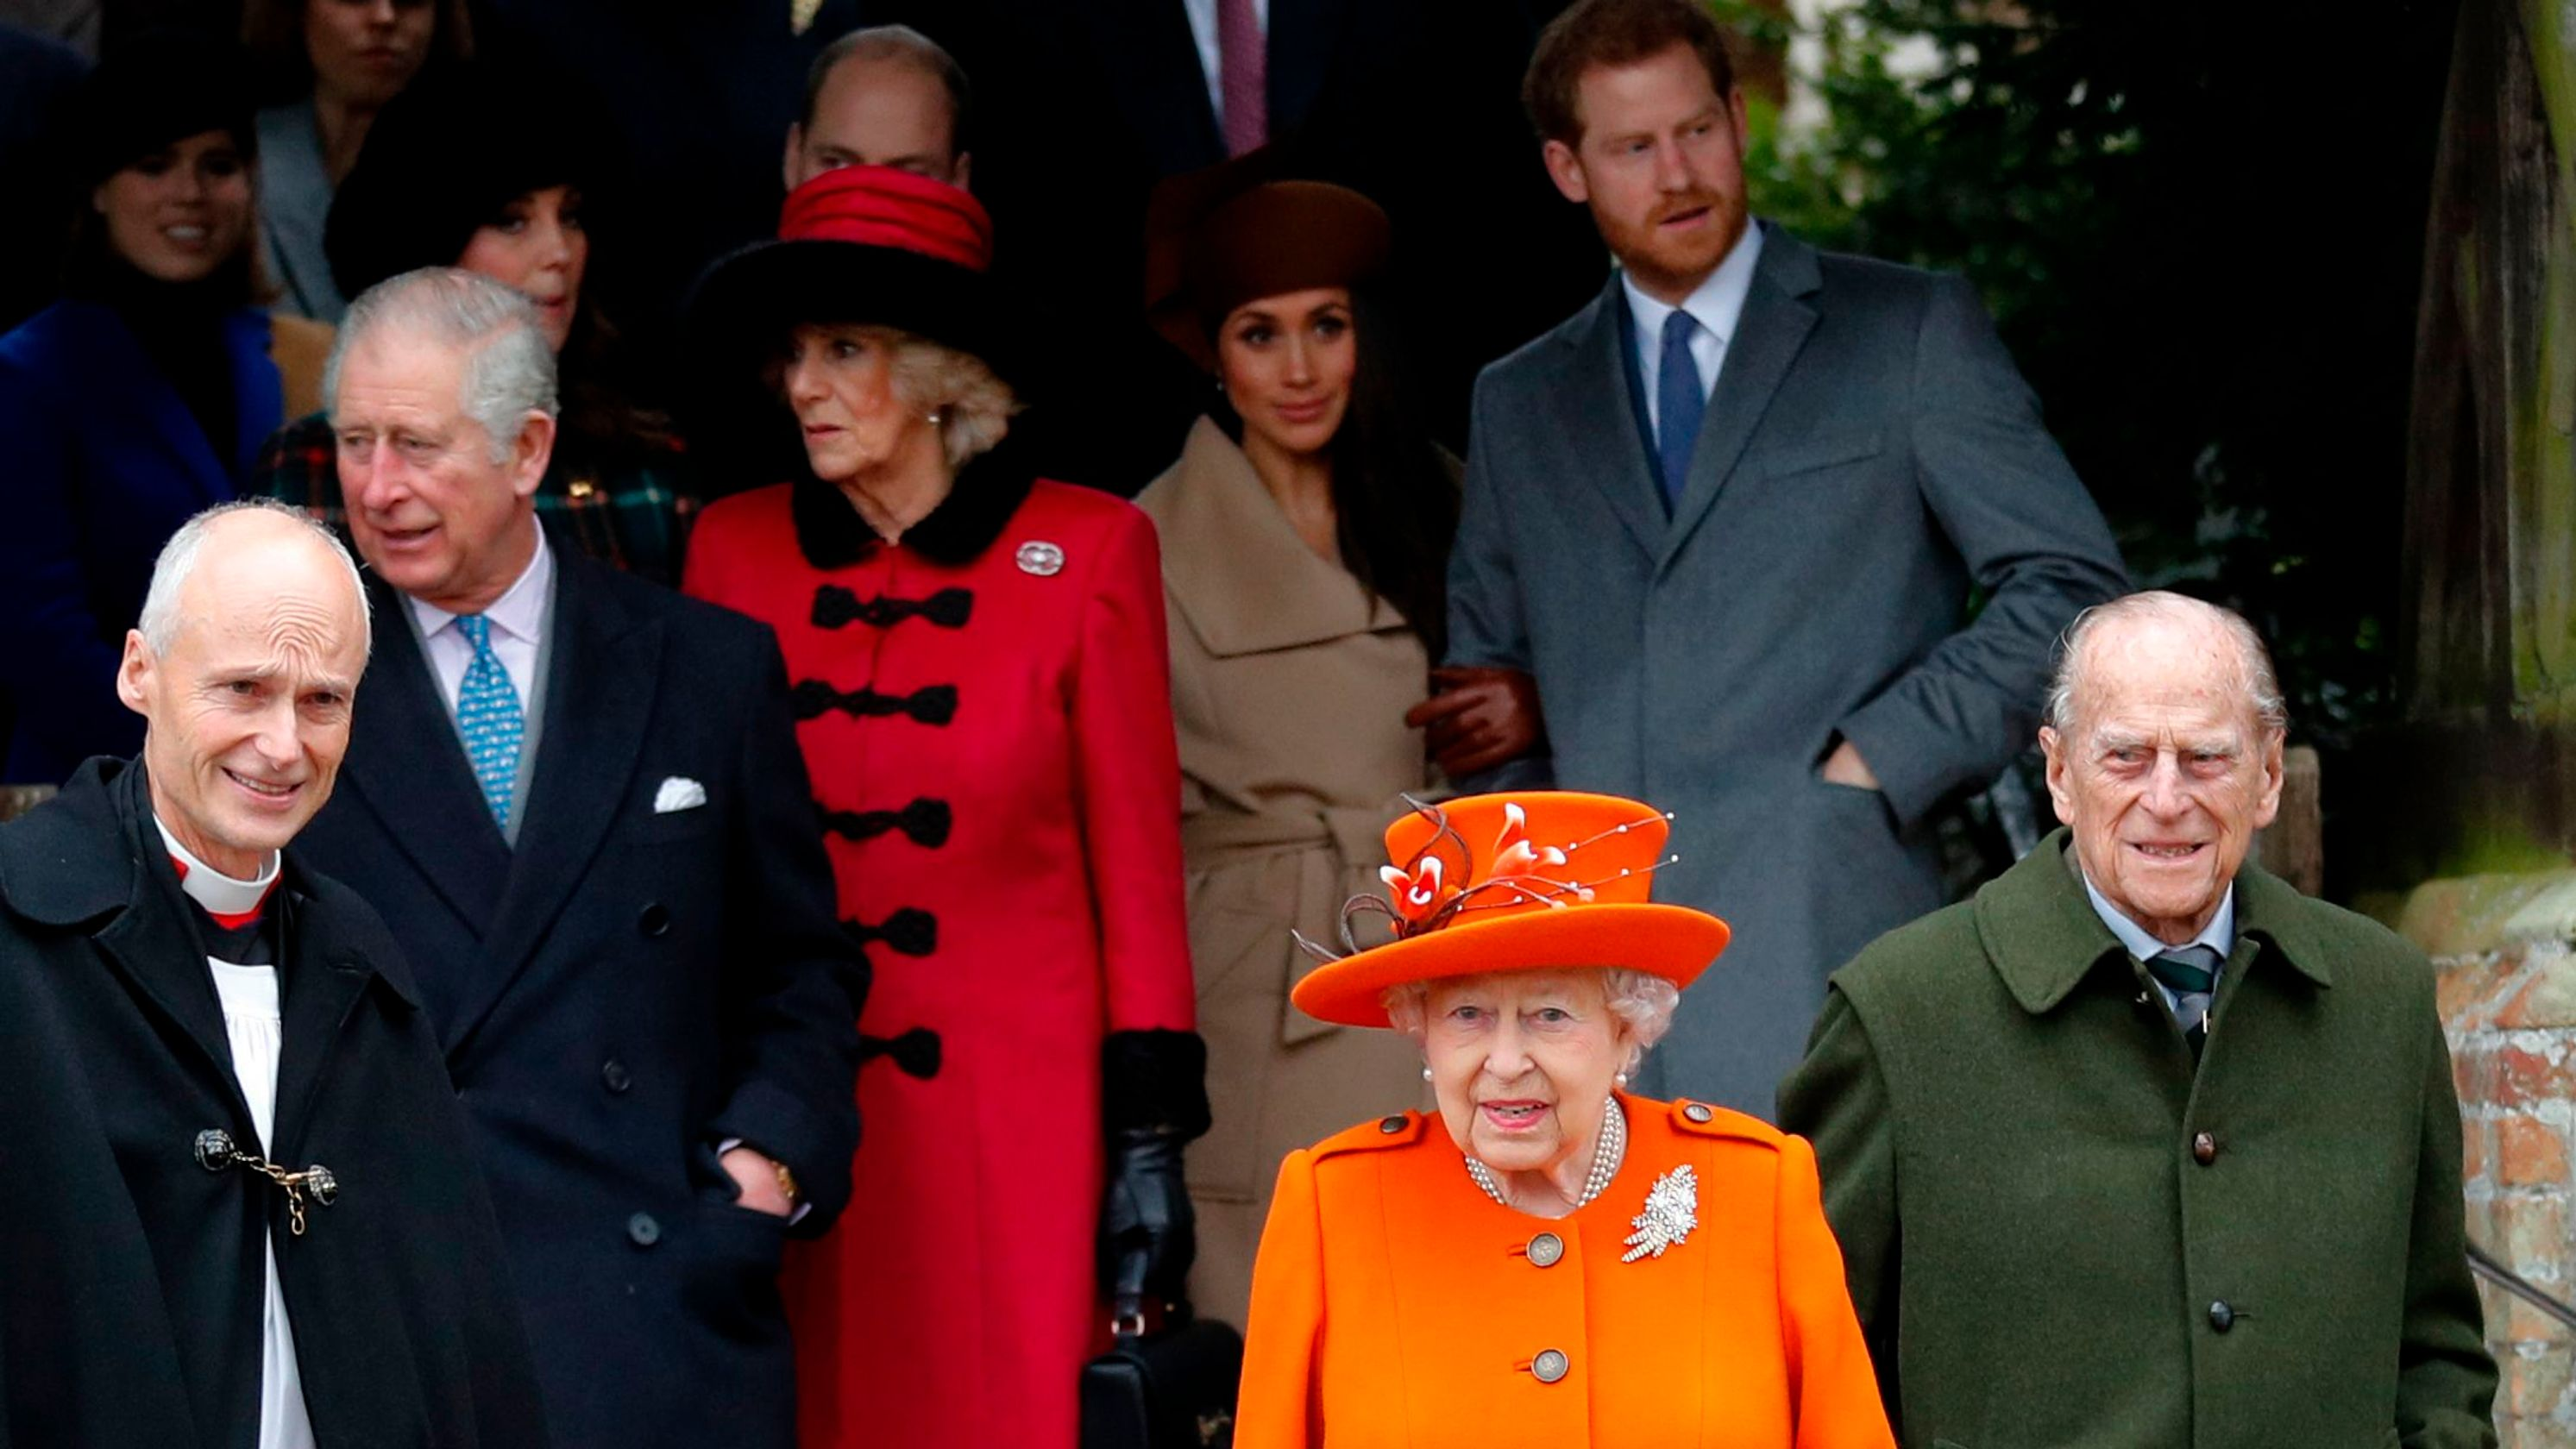 Royal Christmas: How are Prince Harry, Meghan, Prince William and Kate celebrating?